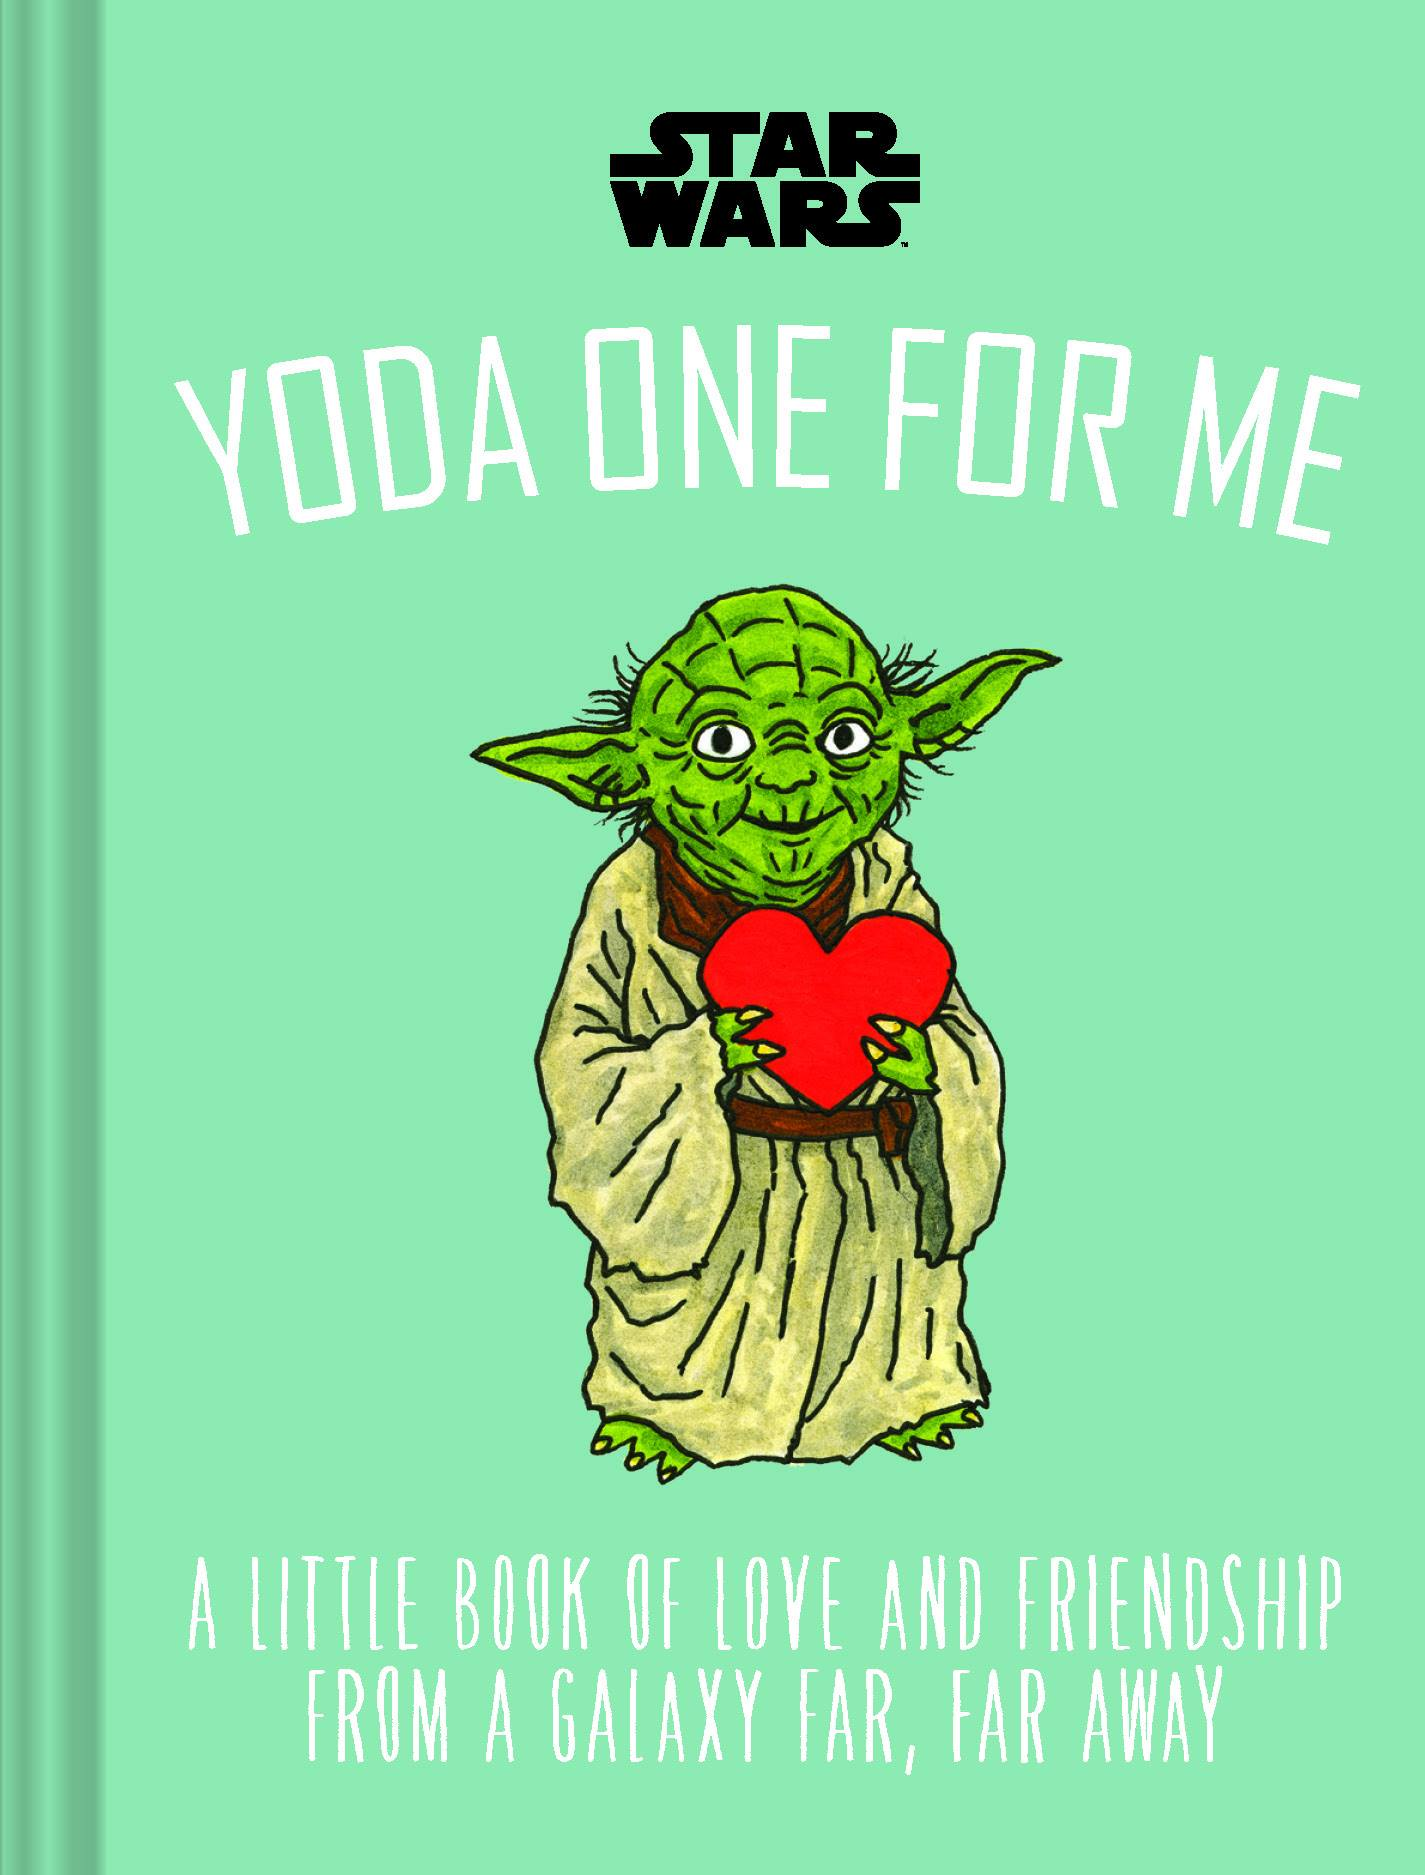 Star Wars: Yoda One For Me